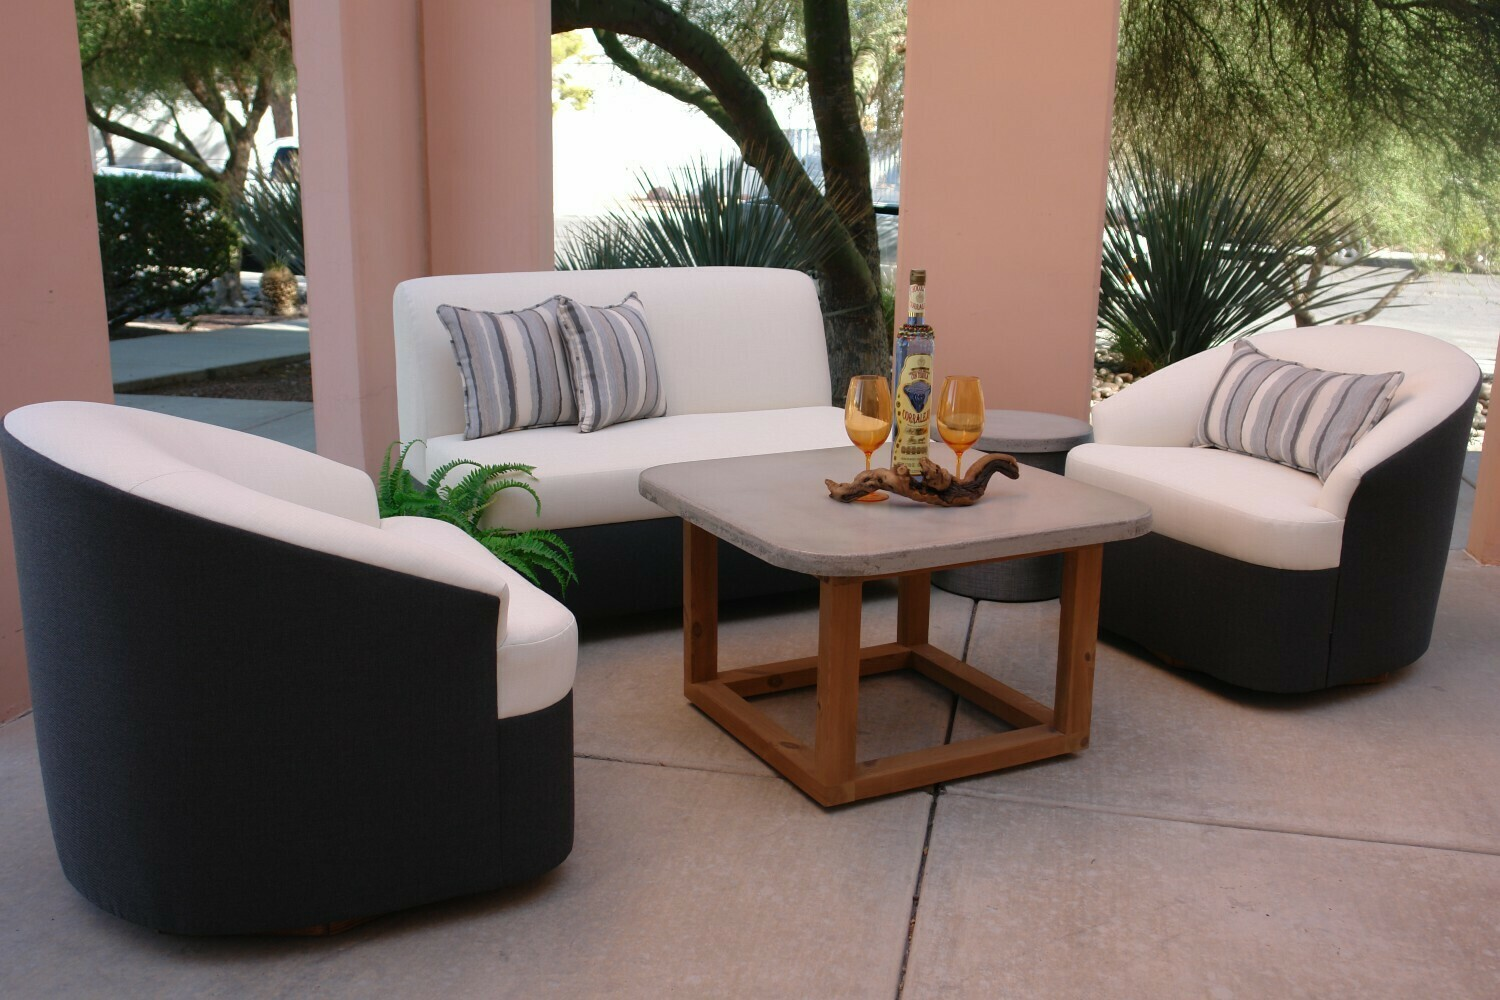 Resort Style 3 Piece Seating Set- 1 Loveseat and 2 Swivel Chairs